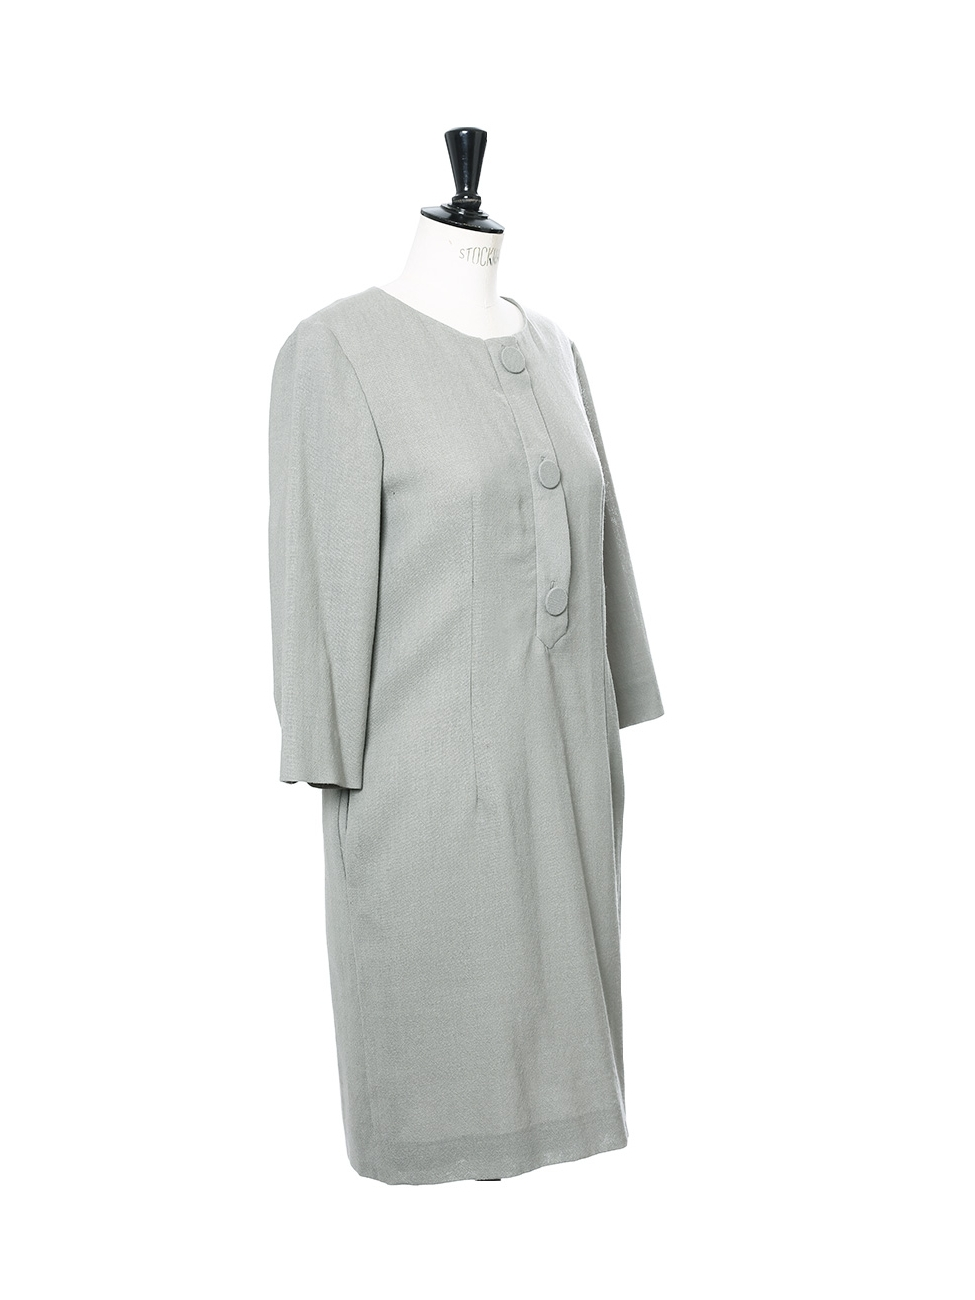 39d63f85a9c4 Louise Paris - CHLOE Light khaki green wool and silk dress NEW Retail price  €1100 Size 40